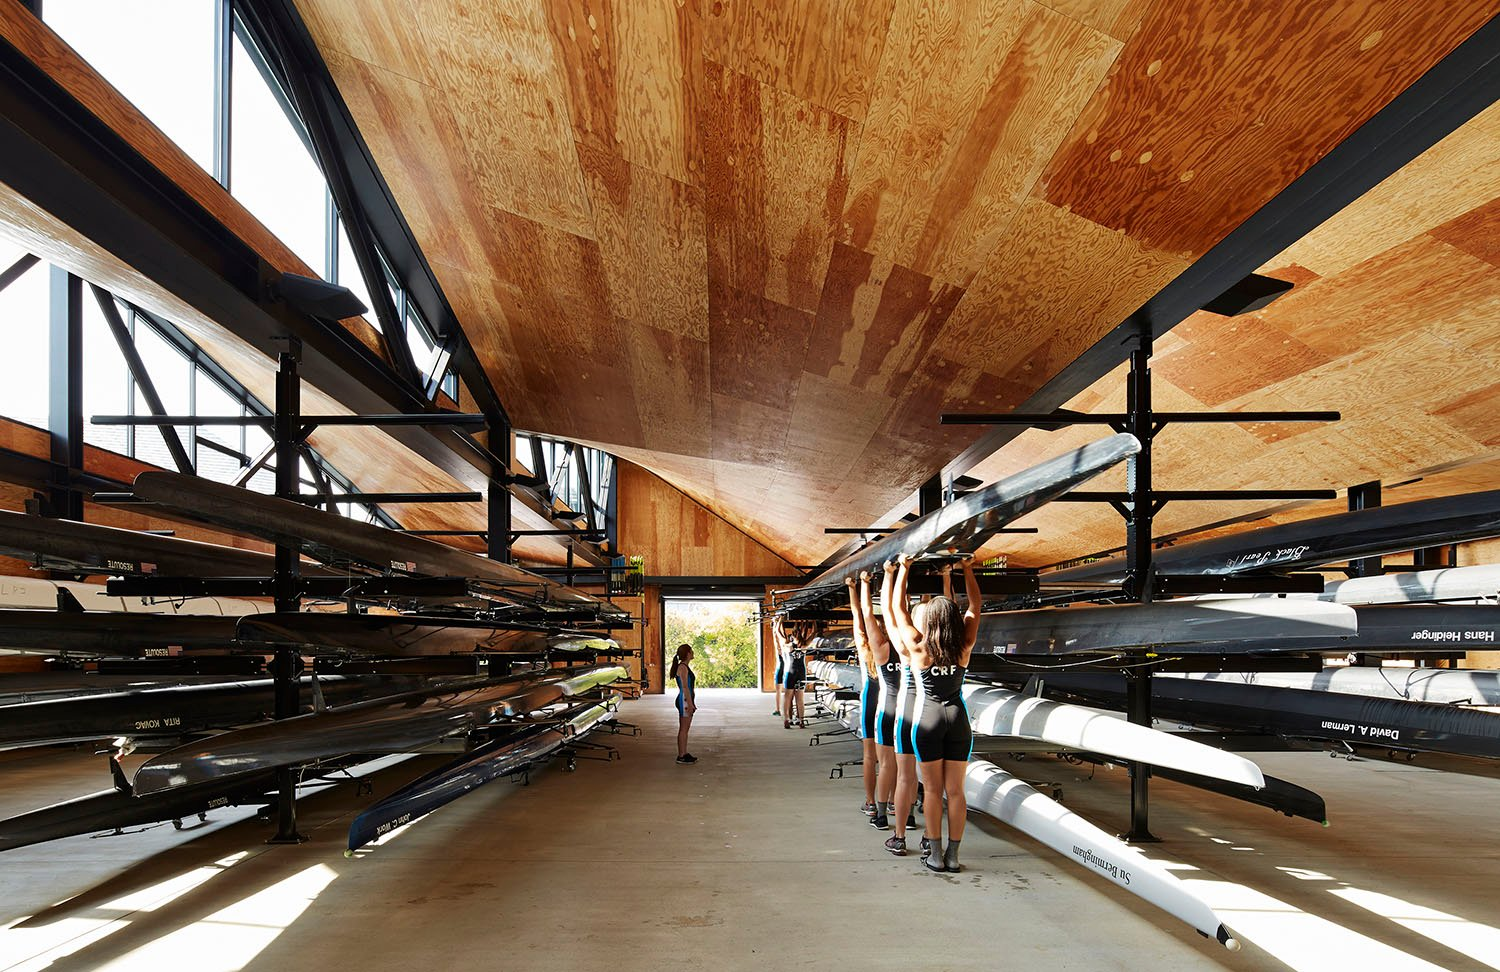 The boat storage buildings house rental kayaks and canoes as well as the rowing teams' eight-person shells.